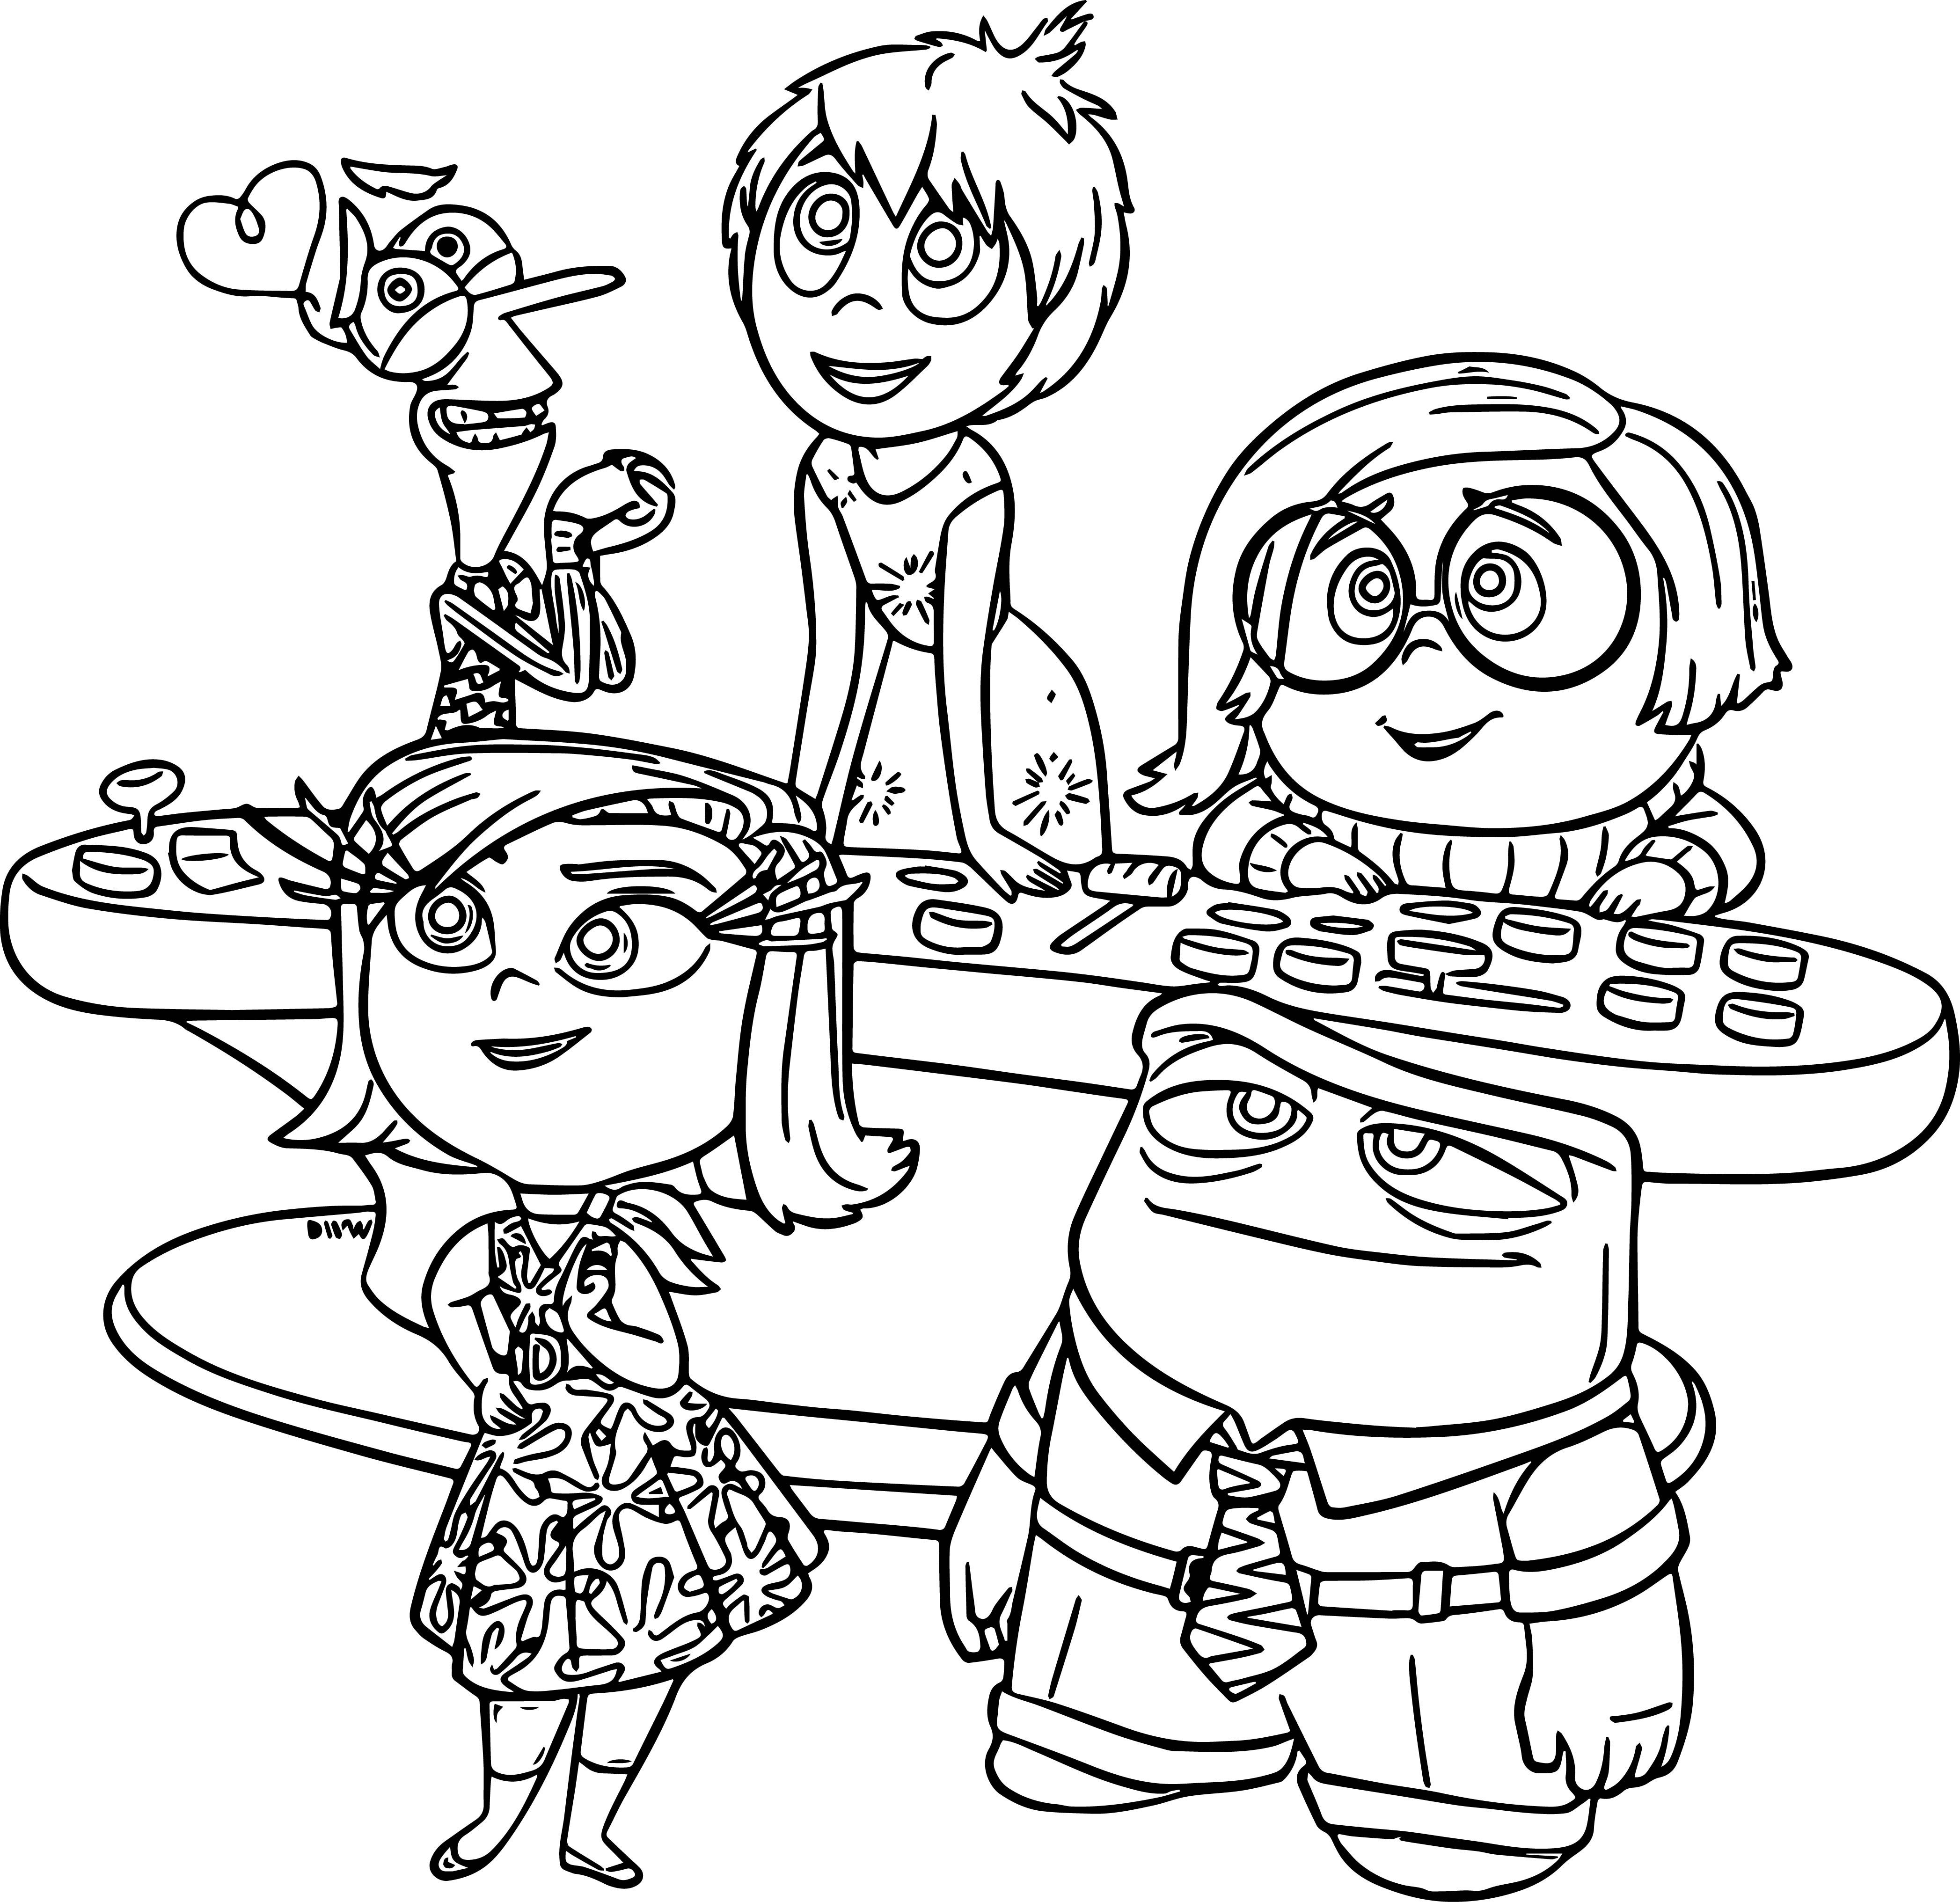 Disney Pixar Inside Out Coloring Page  Inside out coloring pages